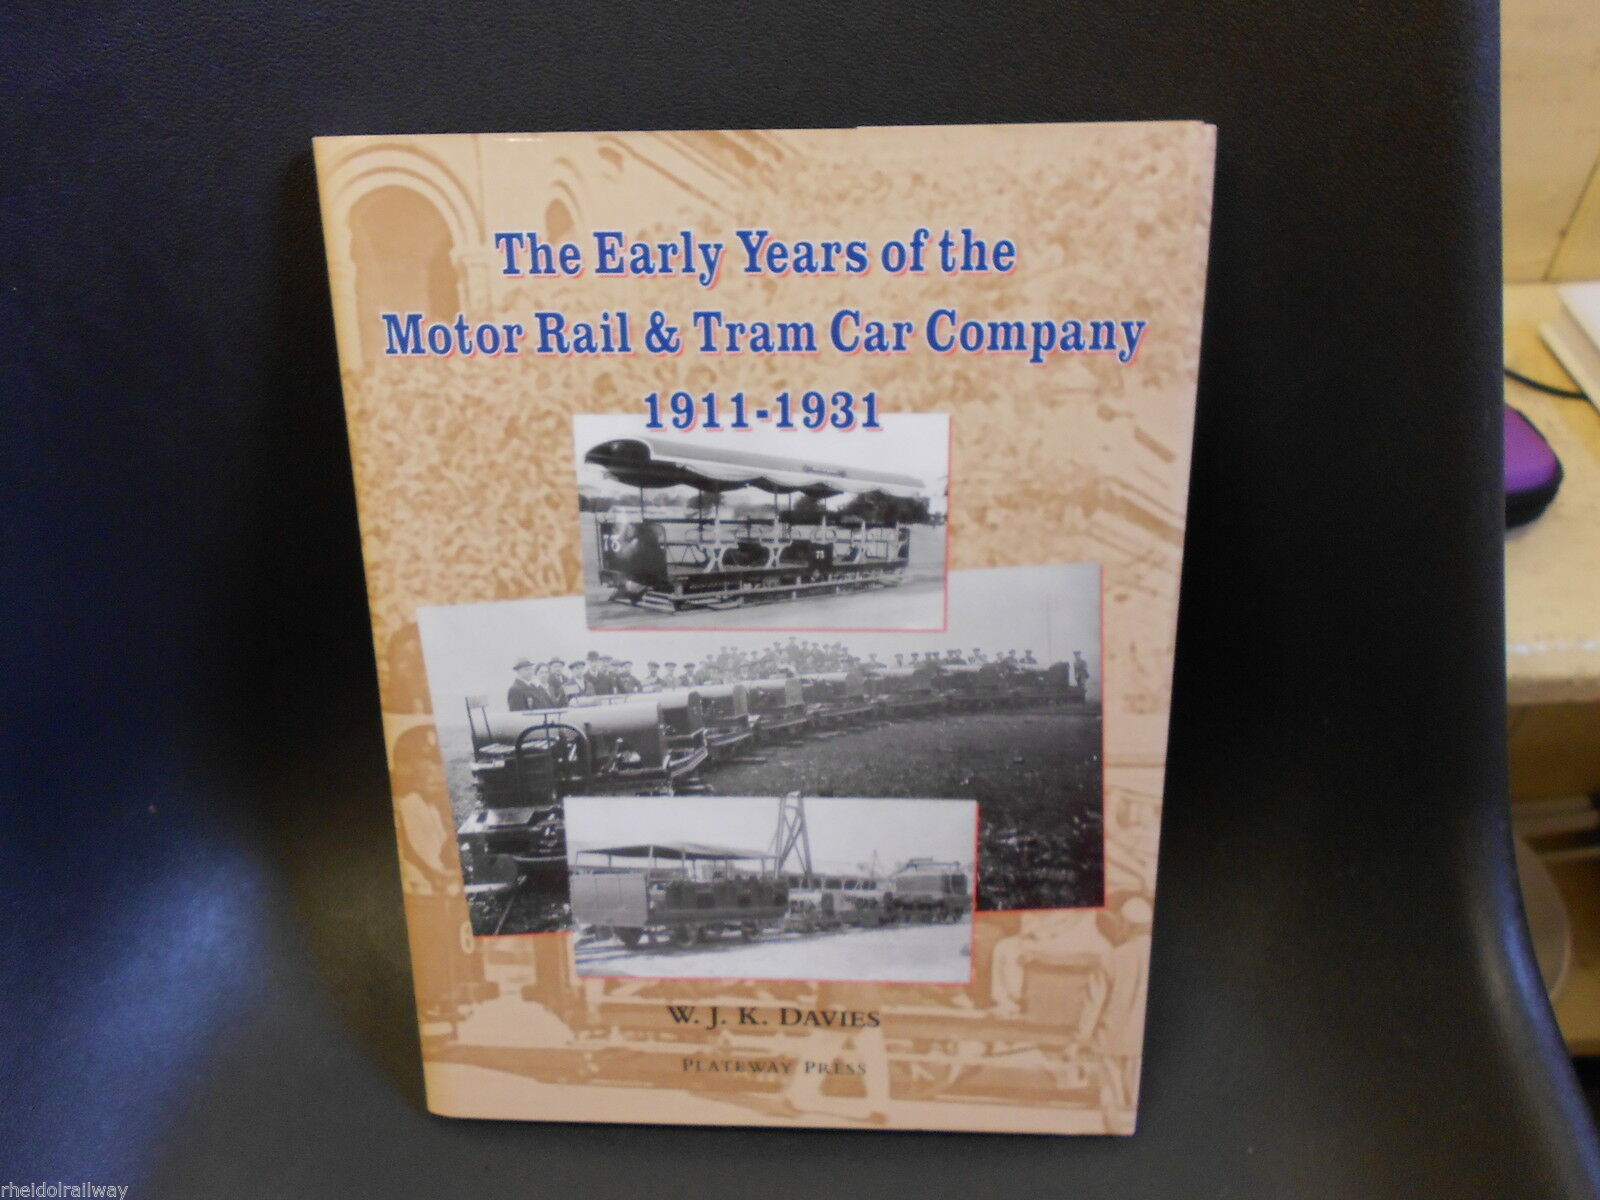 Narrow gauge,The Early Years Of The Motor Rail & tram car company